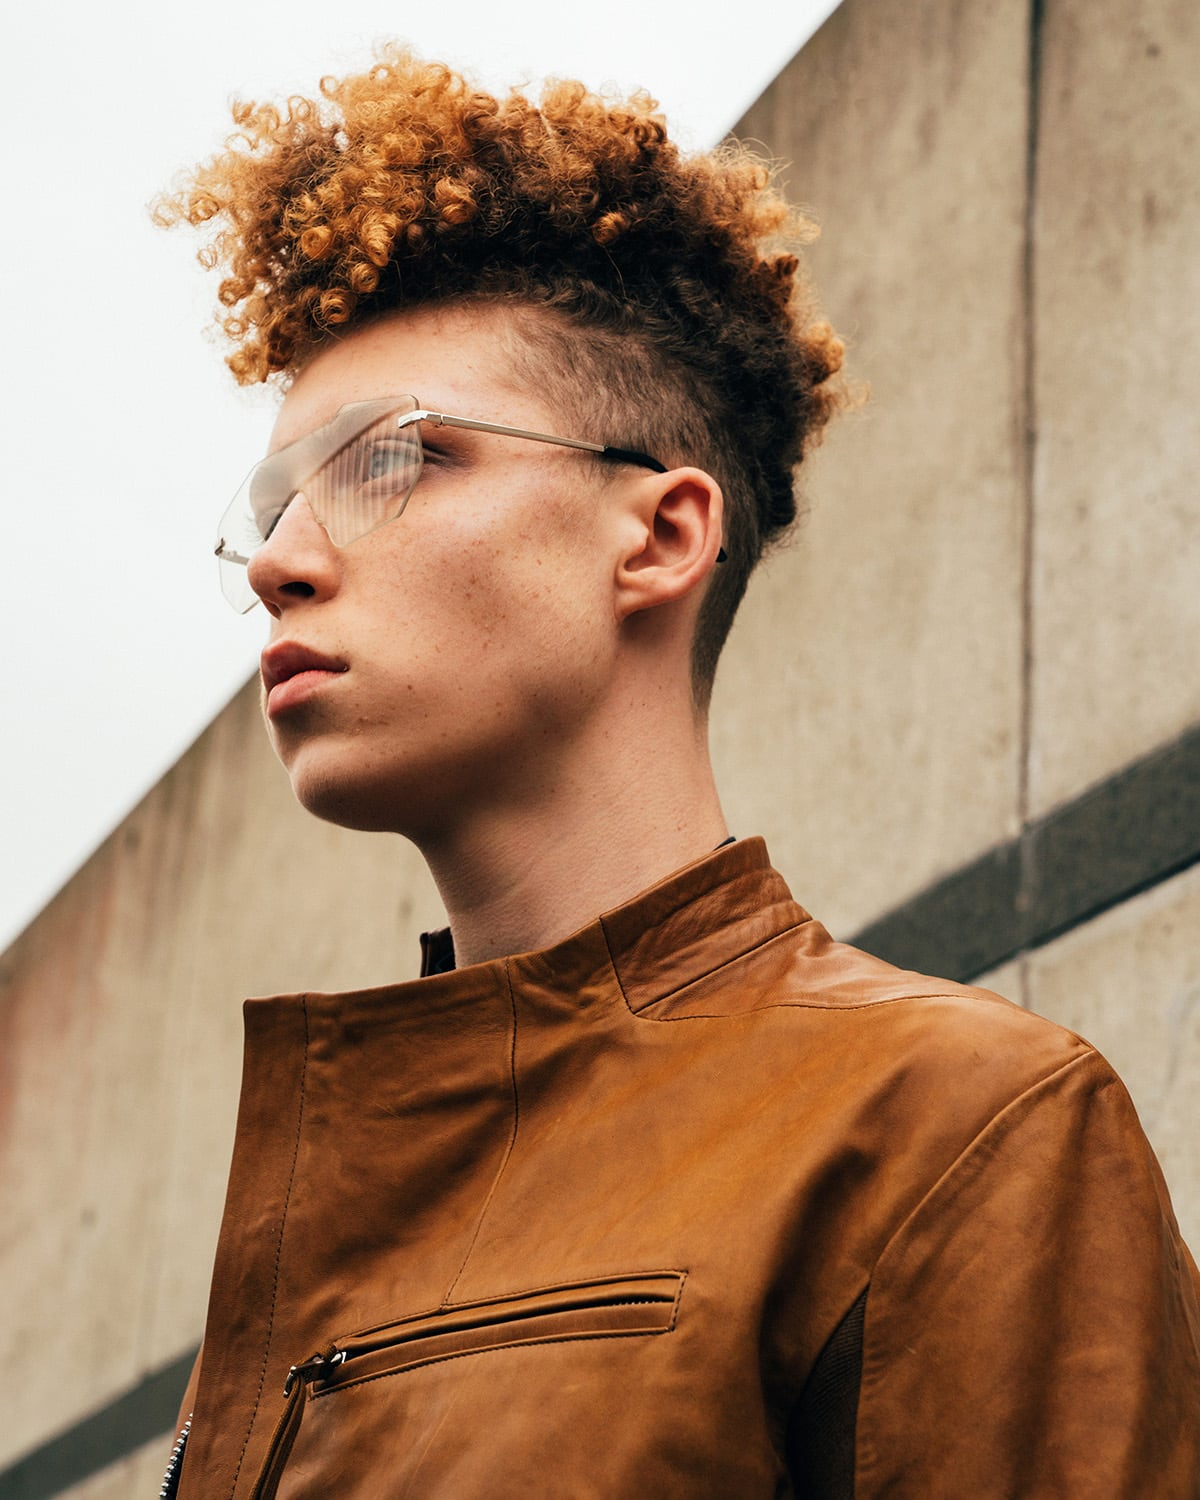 Menswear fashion photography by London editorial photographer Ira Giorgetti featuring male model Luis shot on location in Thames Barrier Park